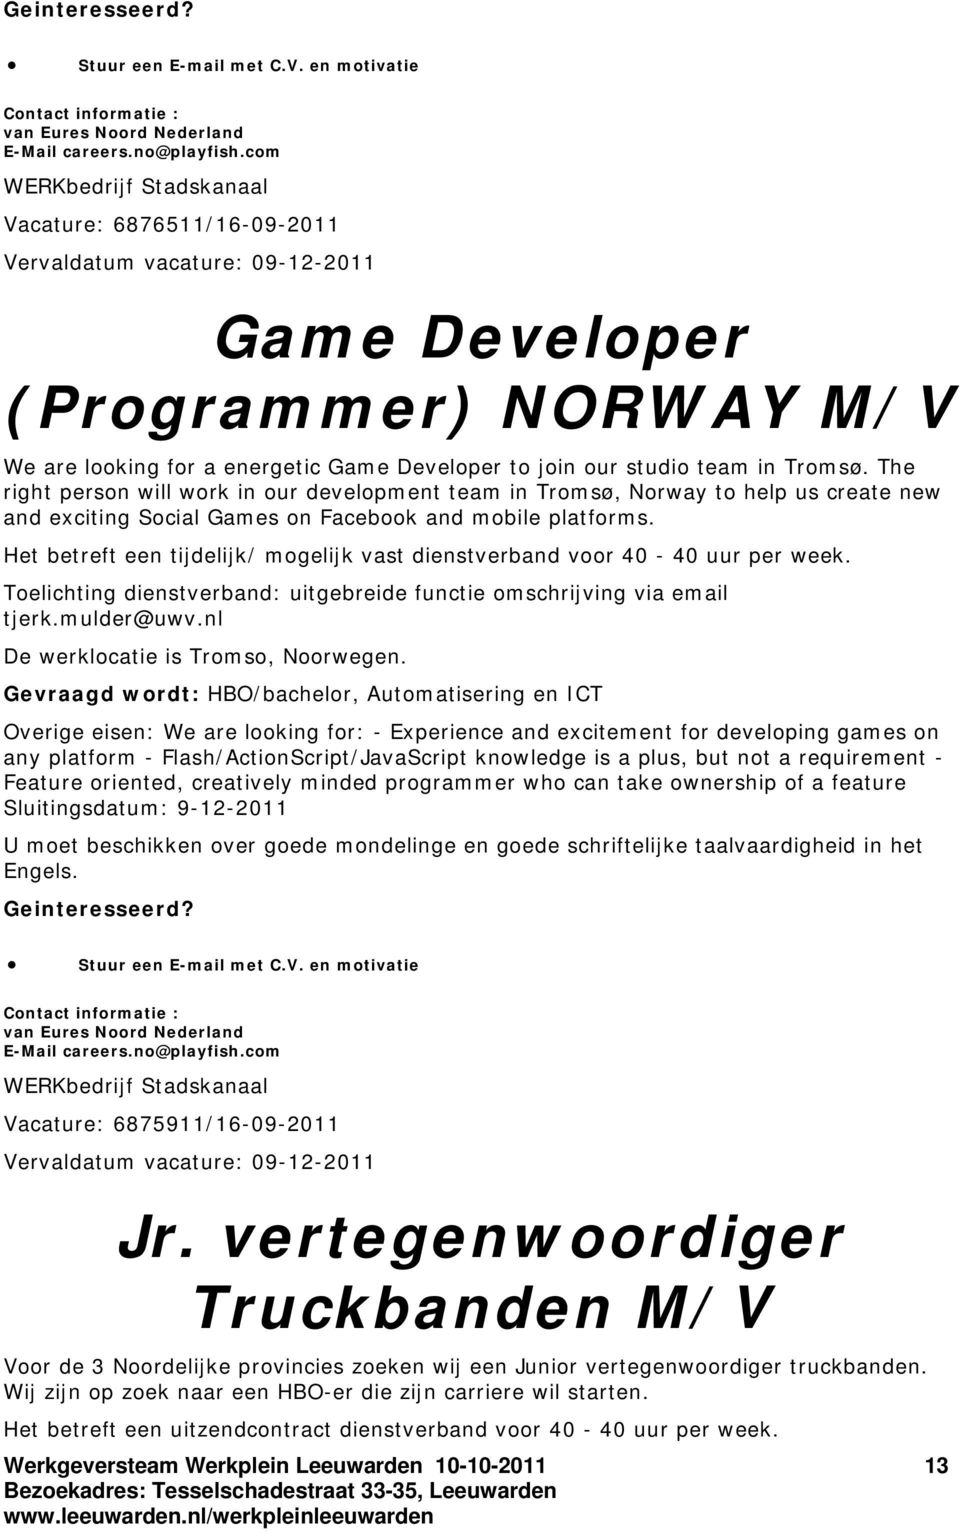 in Tromsø. The right person will work in our development team in Tromsø, Norway to help us create new and exciting Social Games on Facebook and mobile platforms.